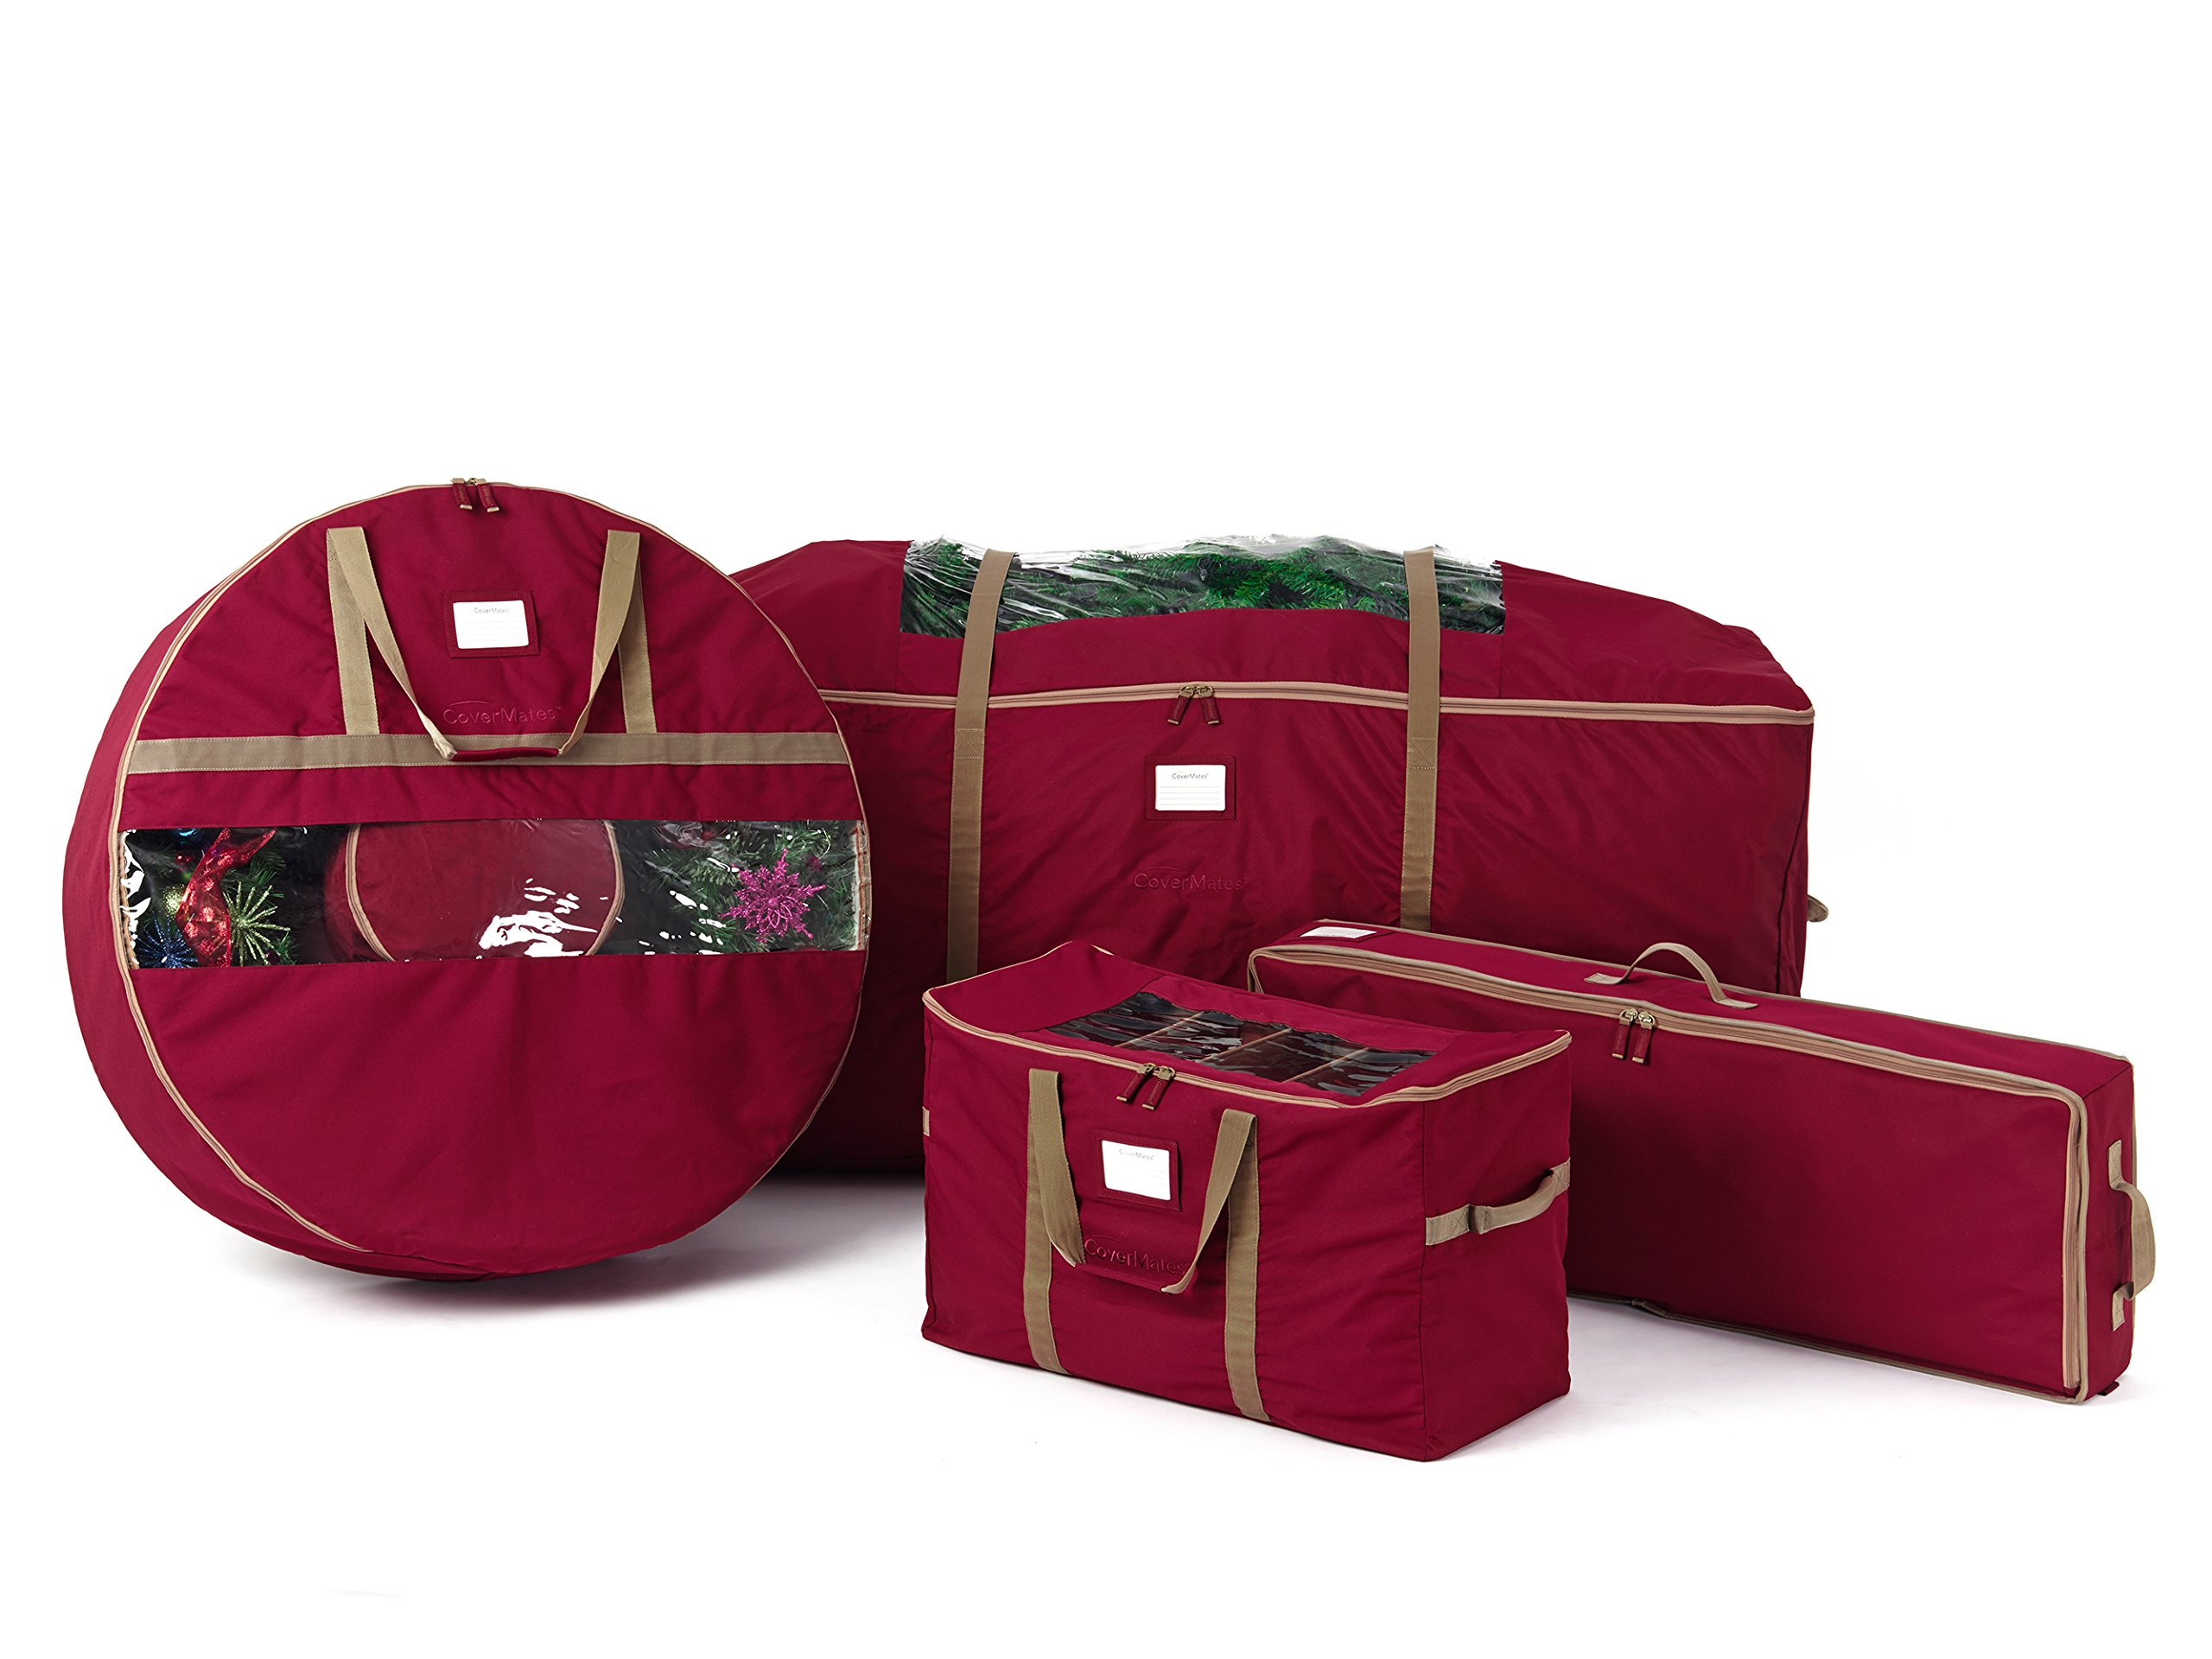 CoverMates – 4PC Holiday Storage Set (60'' Tree Bag + 36'' Wreath Bag + Gift Wrap + 108PC Ornament Bag) – 3 Year Warranty- Red